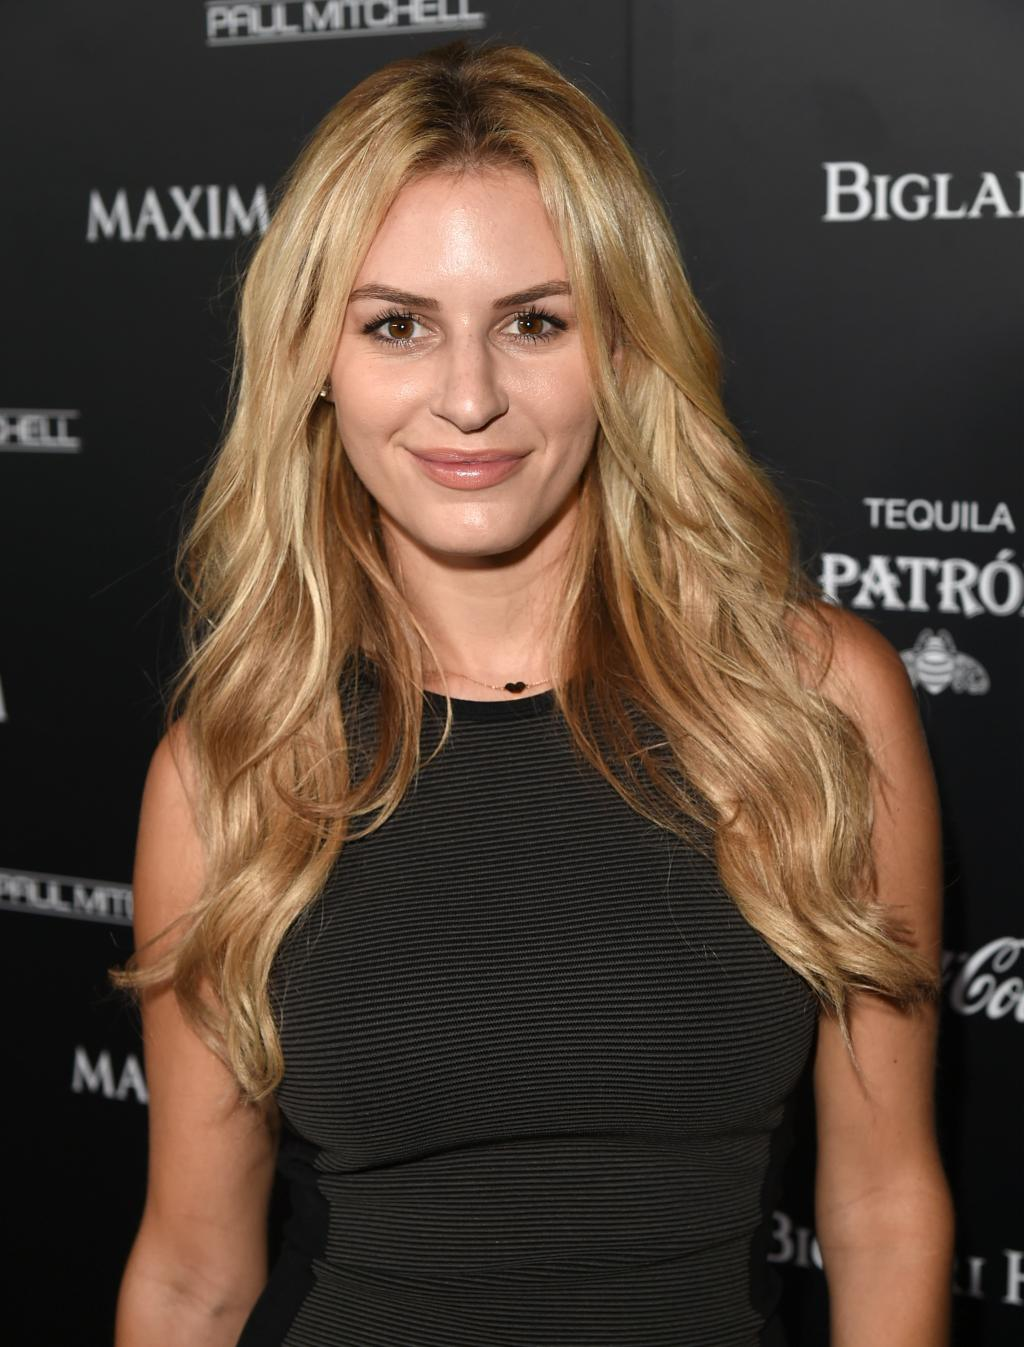 RichKids Of Beverly Hills'' Morgan Stewart Is The Series' Hilarious